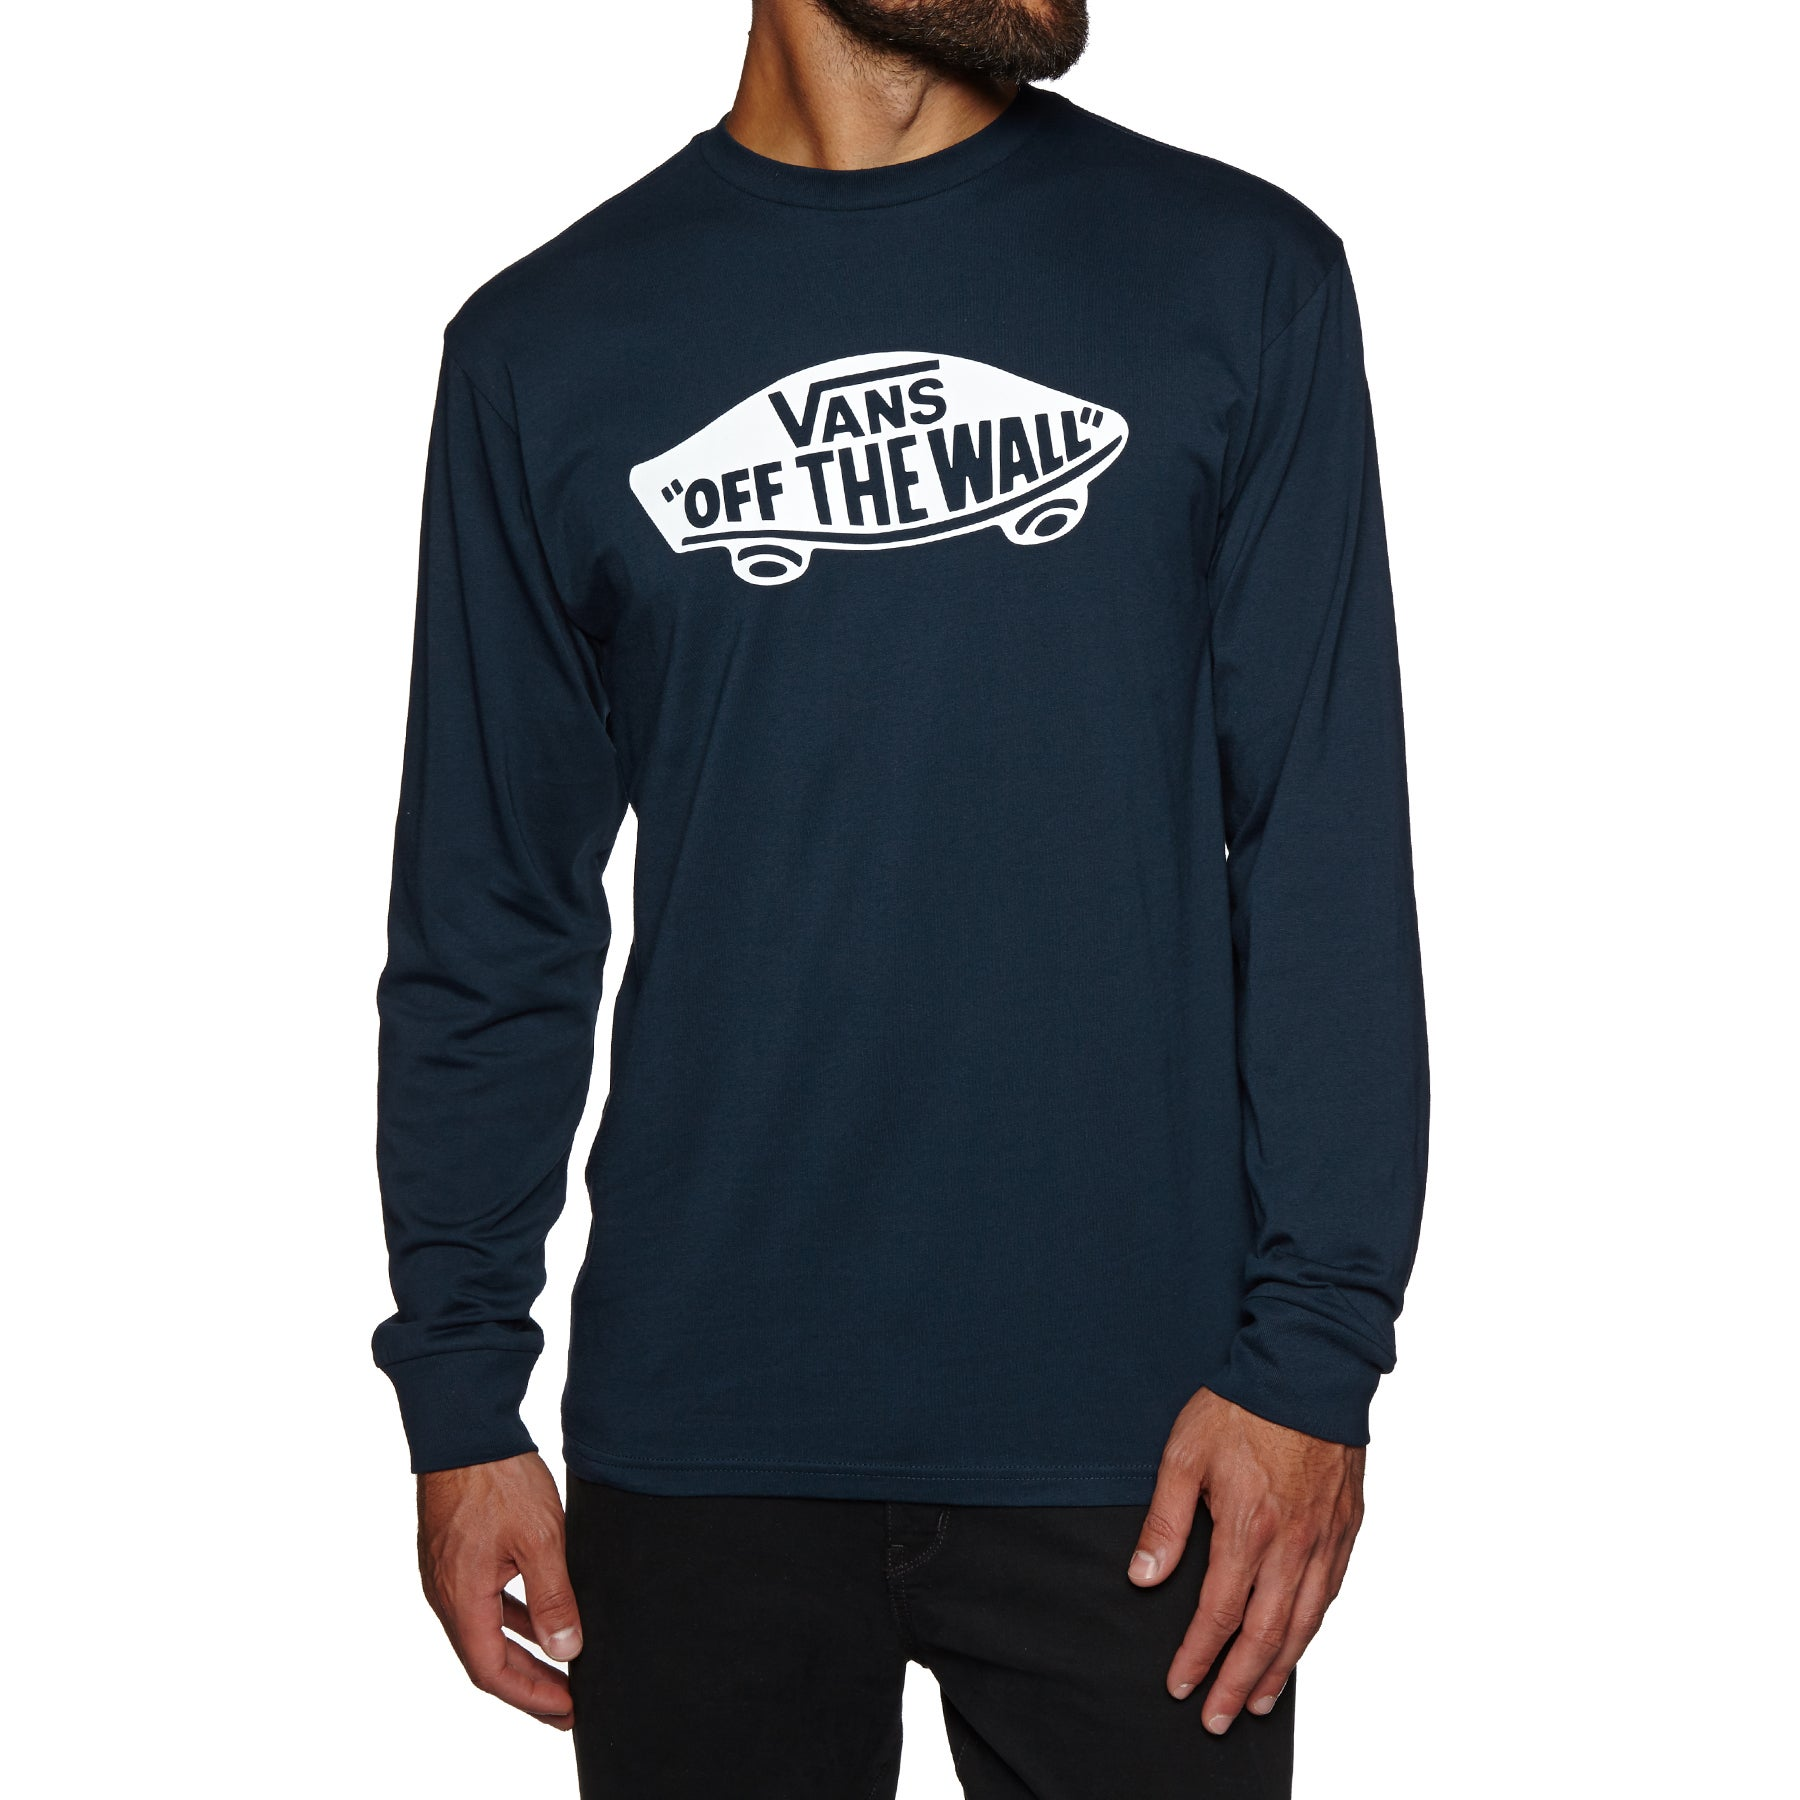 Vans OTW Long Sleeve T-Shirt - Navy White